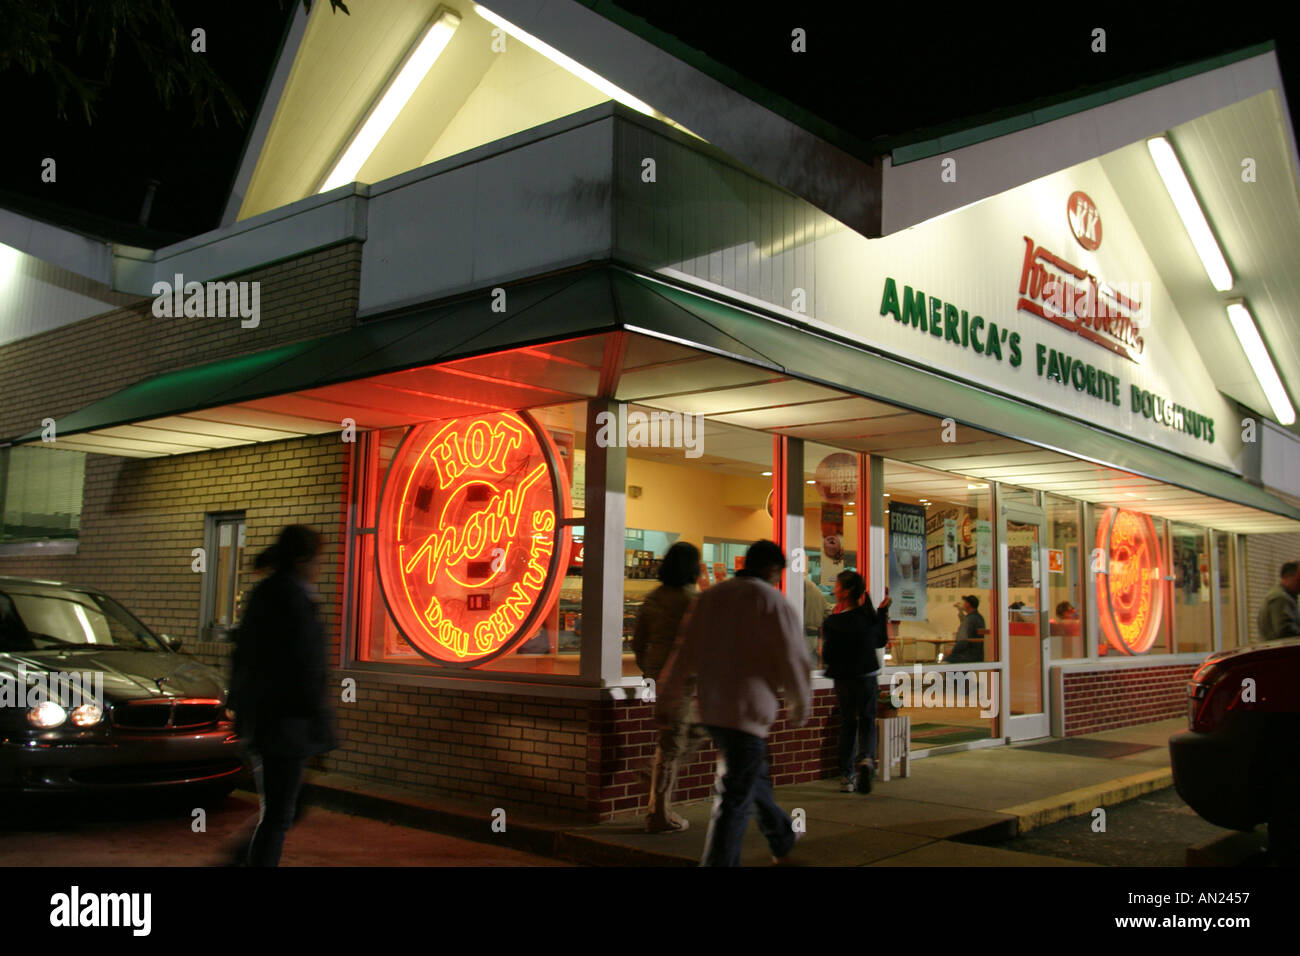 North Carolina, South, Tar Heel State, Wake County, Raleigh, Krispy Kreme Doughnuts, open 24 hours, drive up window, Stock Photo